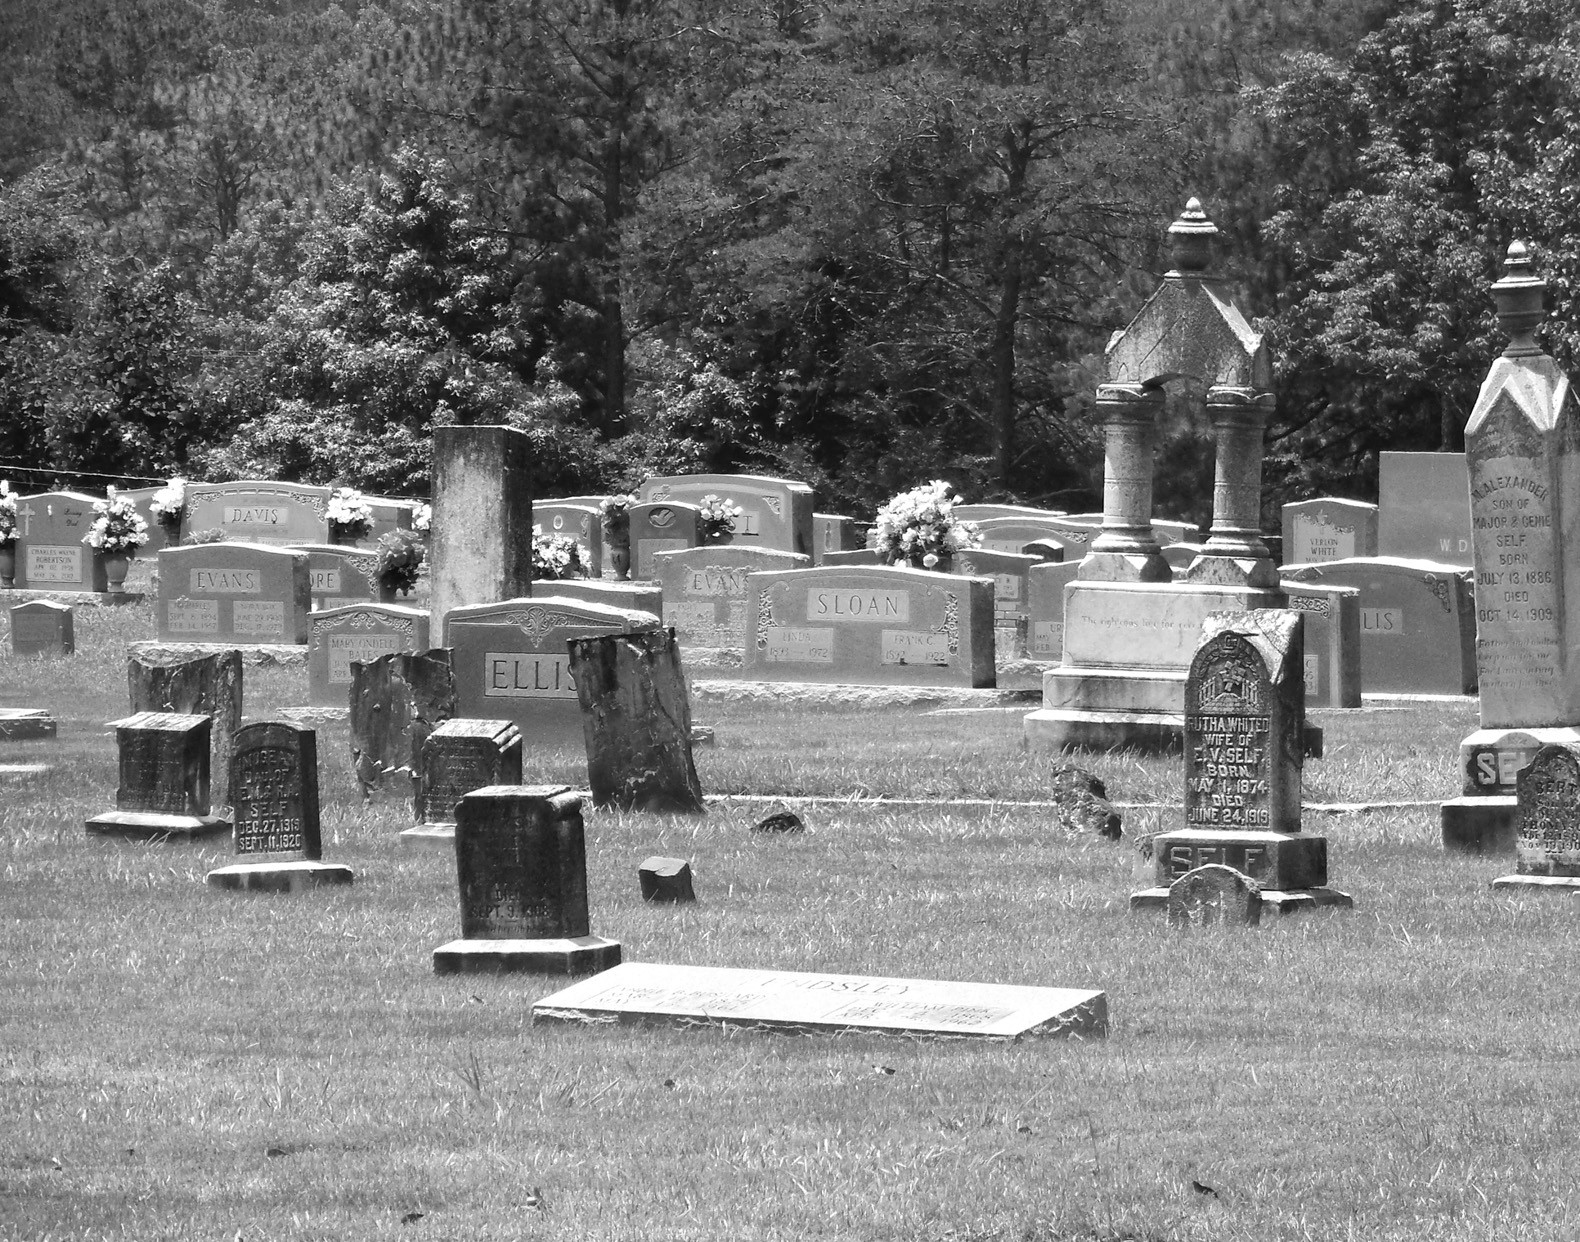 In hopes of preserving Dailey's Chapel Cemetery in Rosa, Harold Cleveland and those on the cemetery board, are asking the community to help in funding a marker to be placed on Ala 231. 'It's a large cemetery that is part of the Alabama Historic Cemetery Register and where people are still being buried,' Cleveland says. The board needs donations of any amount to help in the fundraiser with the marker costing approximately $2,000. Dailey's Chapel Cemetery dates back to 1850, but it had been a cemetery prior to that date, according to Cleveland. To donate, drop off a check to the Blount County Memorial Museum at 204 2nd Street North in Oneonta, or call museum curator Amy Rhudy for more information at 625-6905. Cemetery board members include Cleveland, Phillip Whited, Mariah Wood, Jane Chaviers, Julia Whisenant, and Gene Whited. –Nicole Singleton